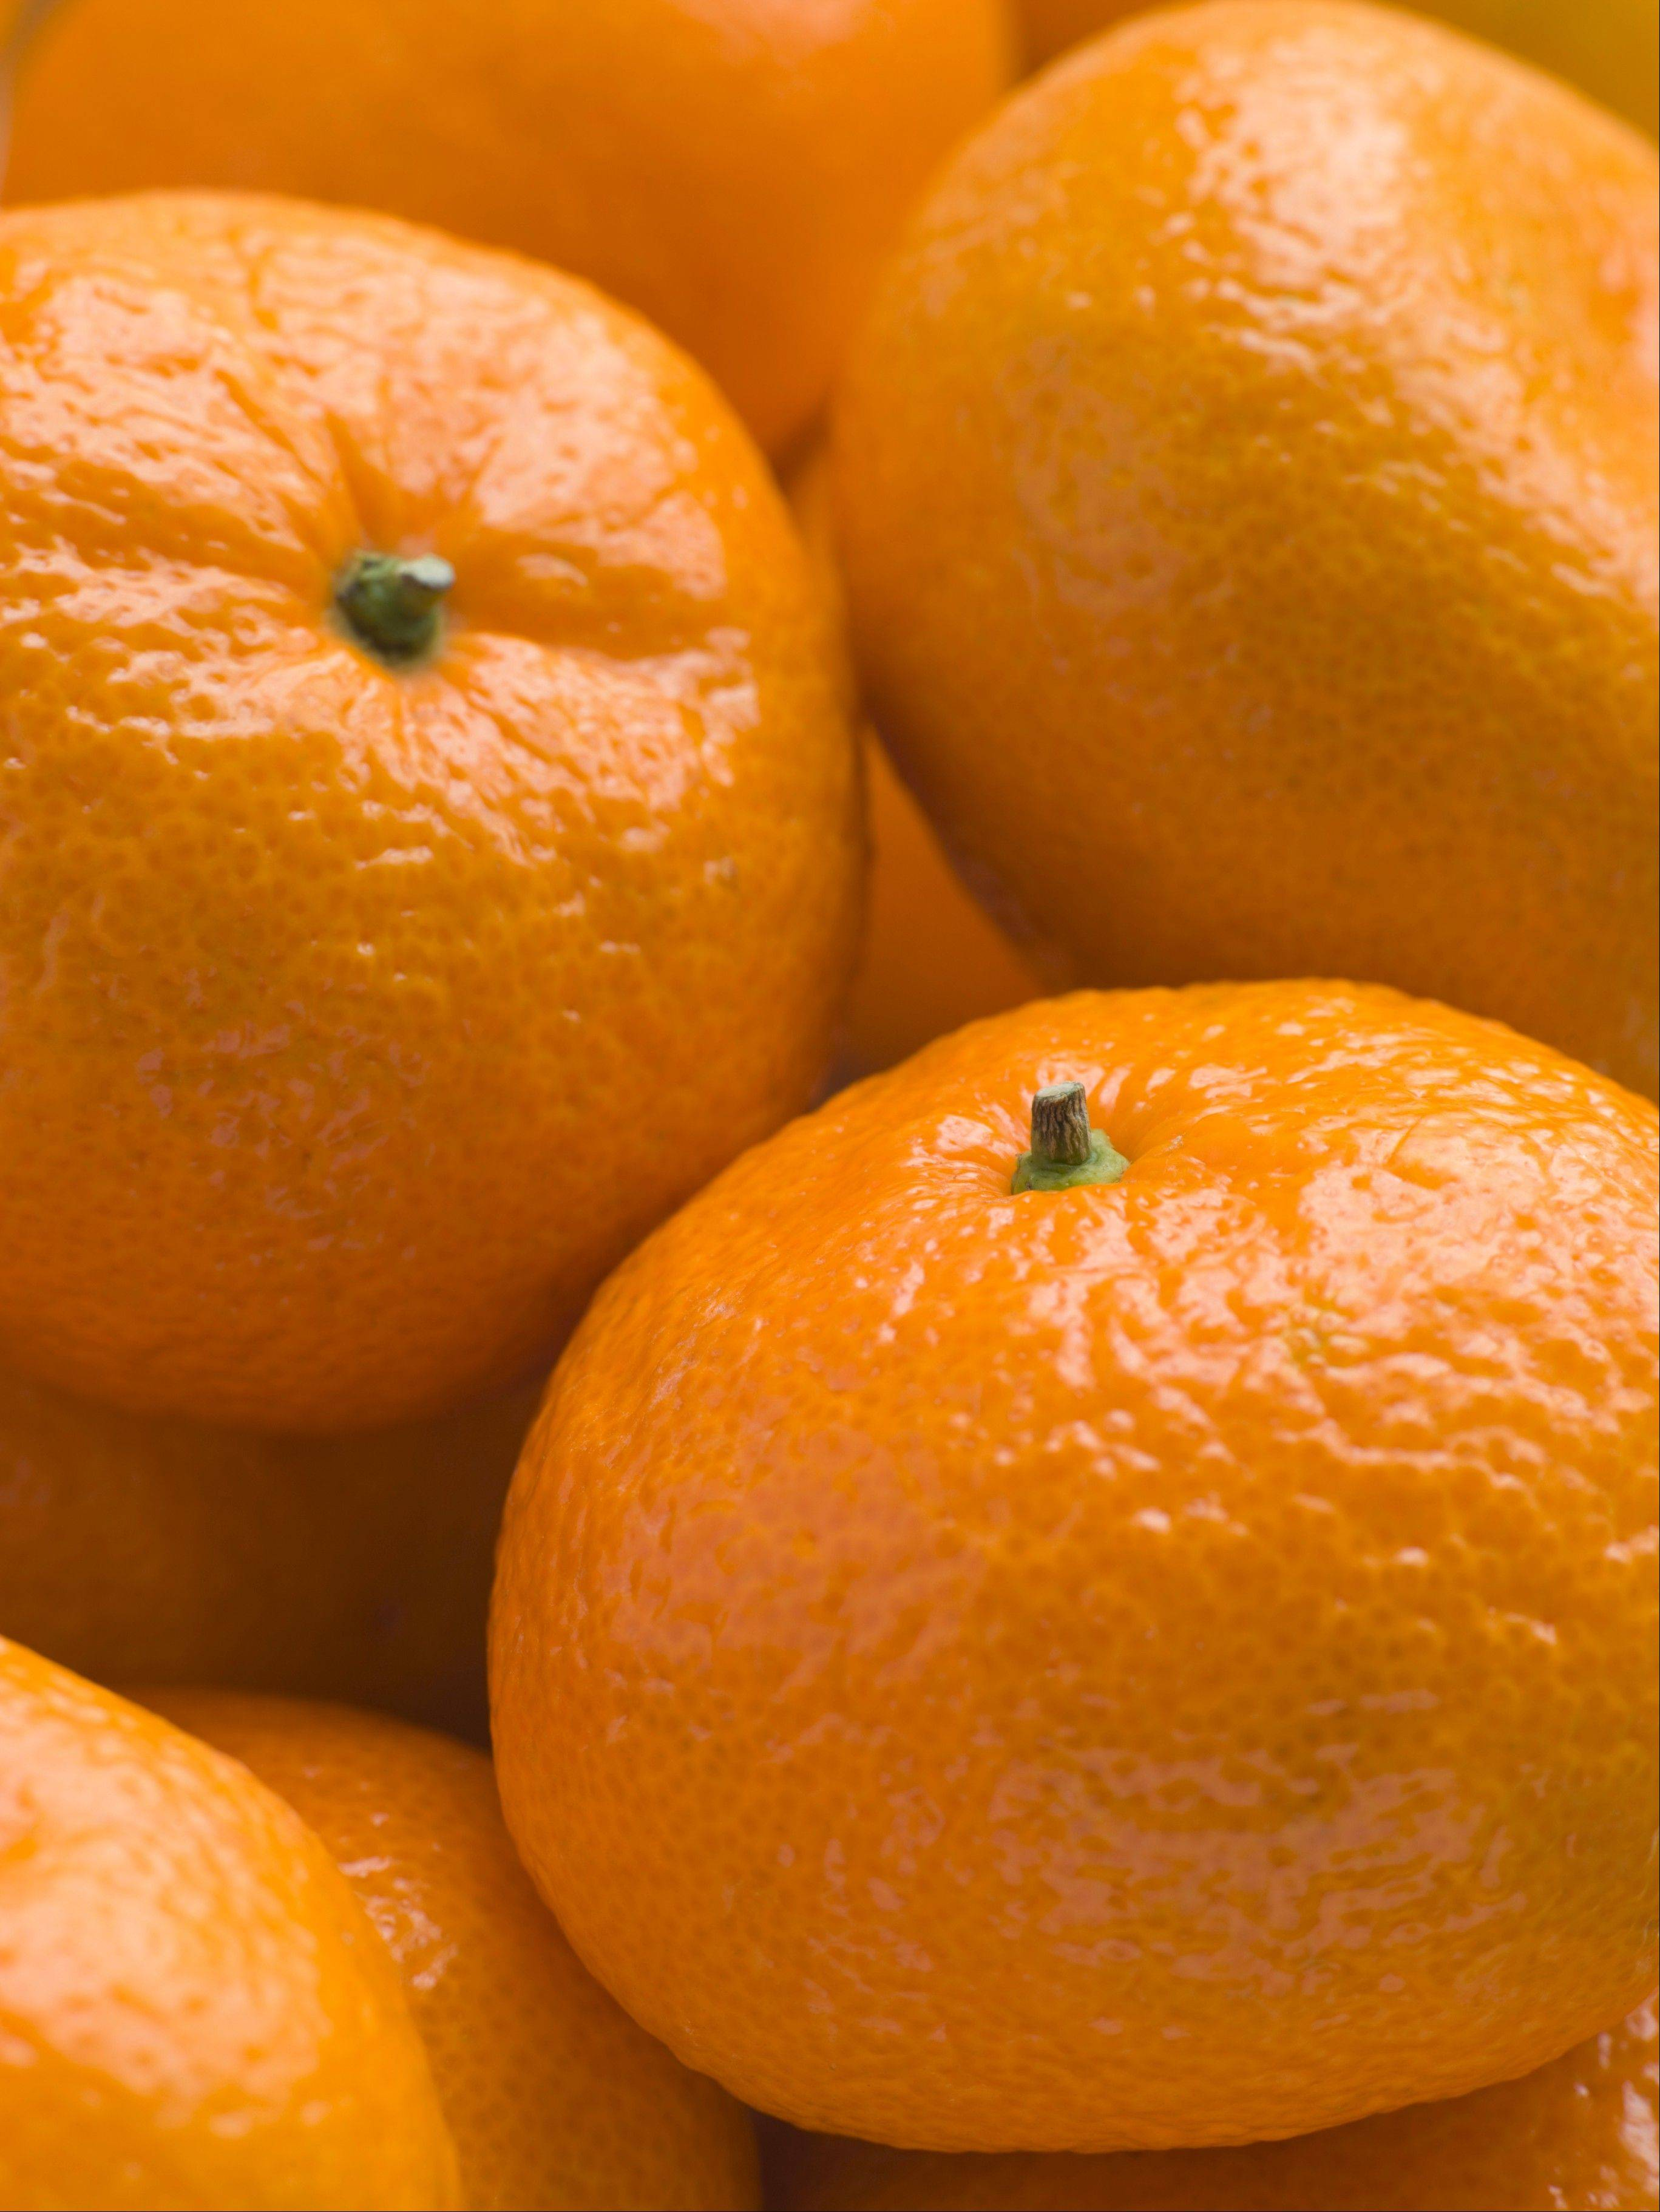 Satsumas and other oranges in the mandarin family contain higher amounts of some phytochemicals than are found in other orange varieties.